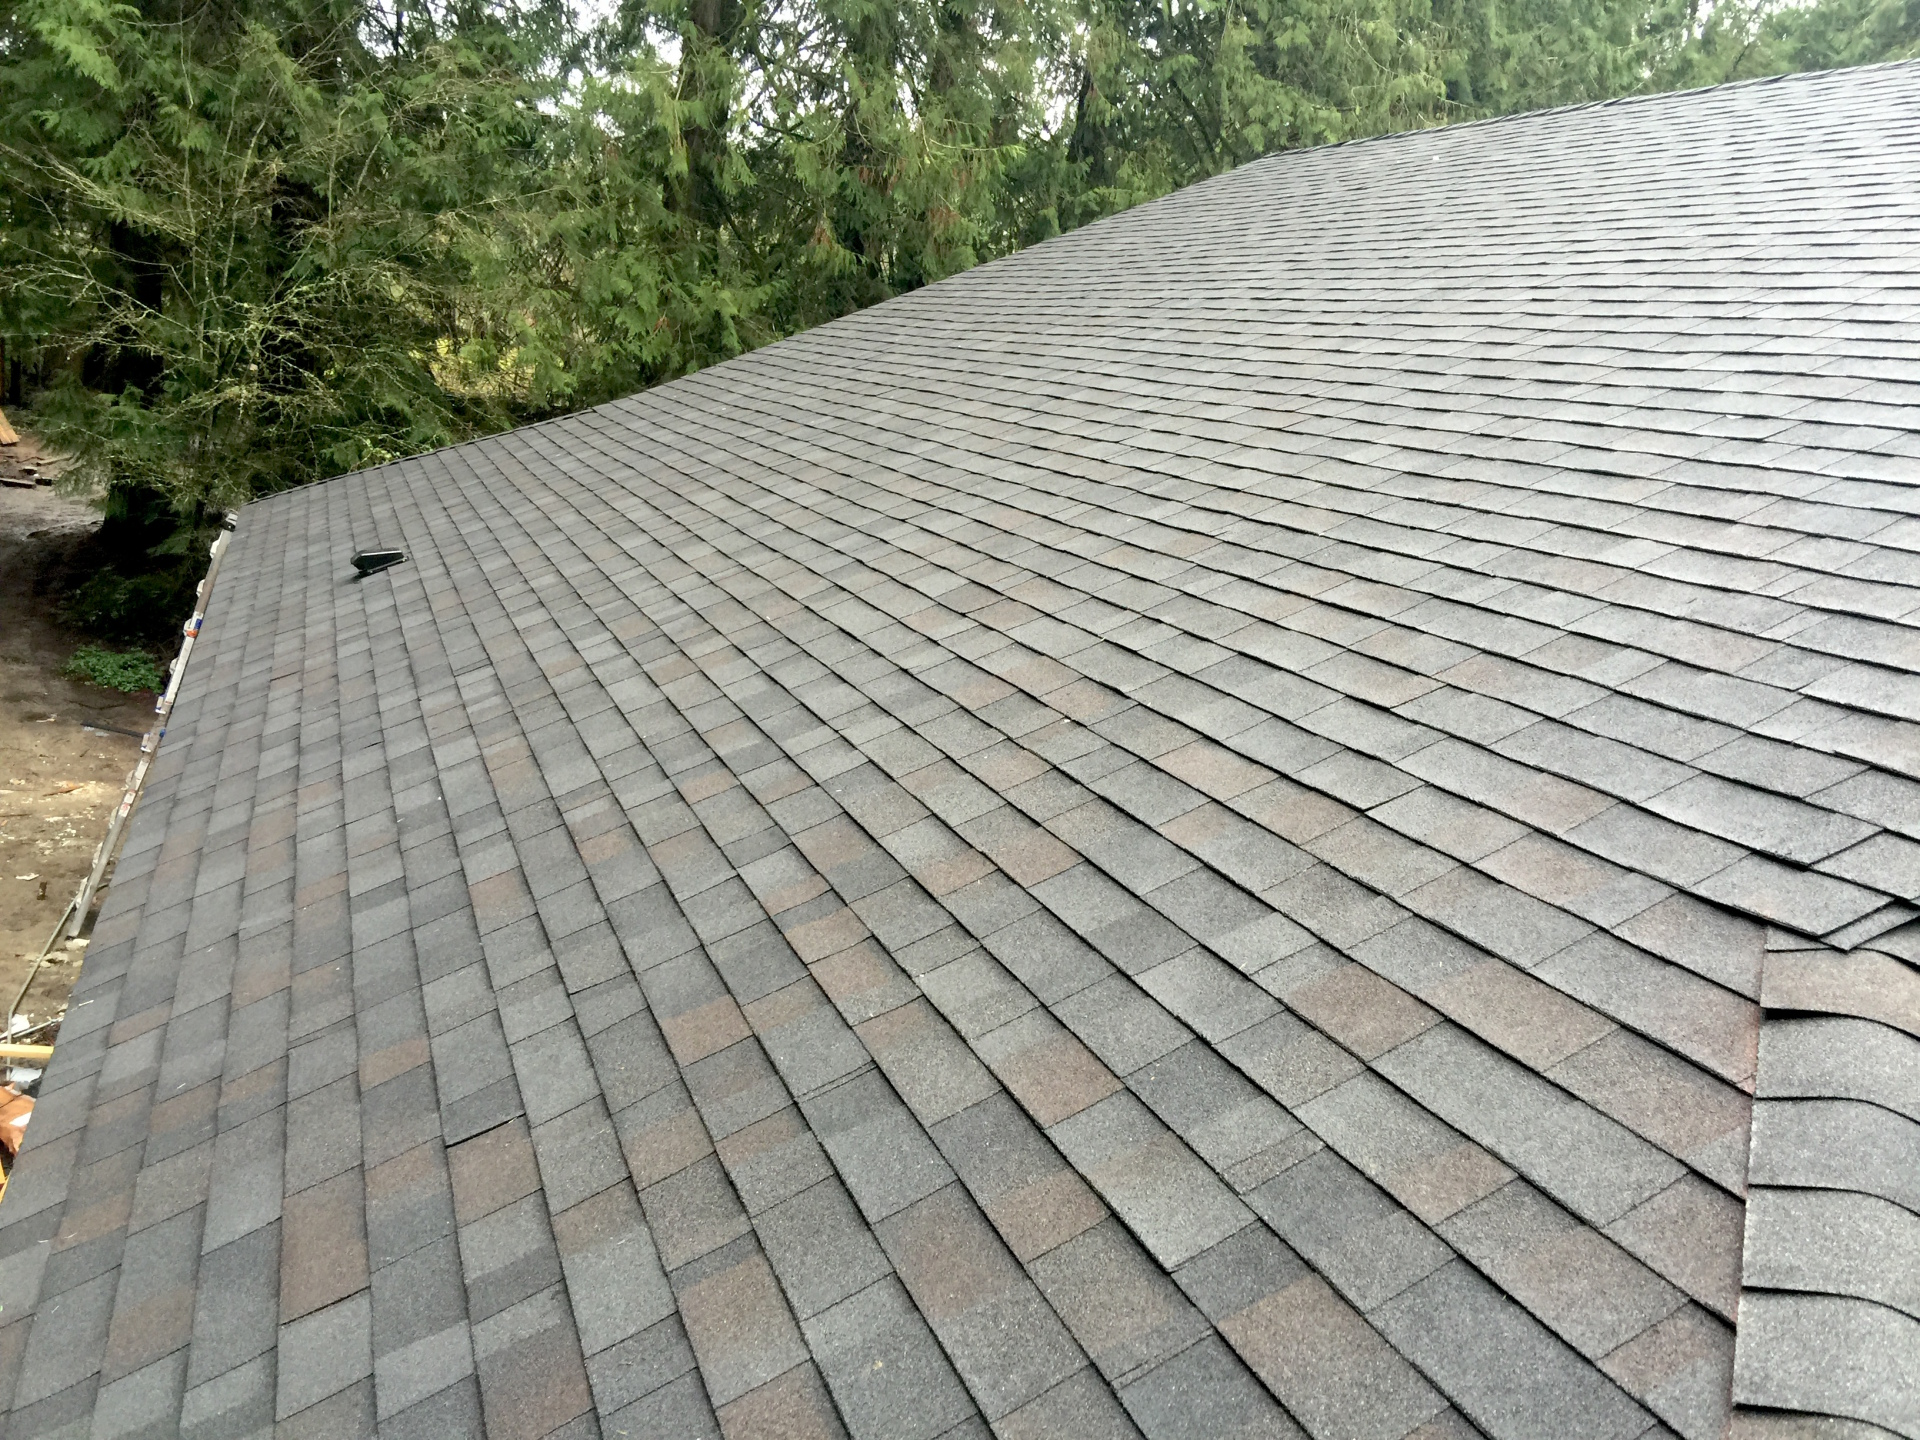 Asphalt Shingle Roofers Gig Harbor, WA